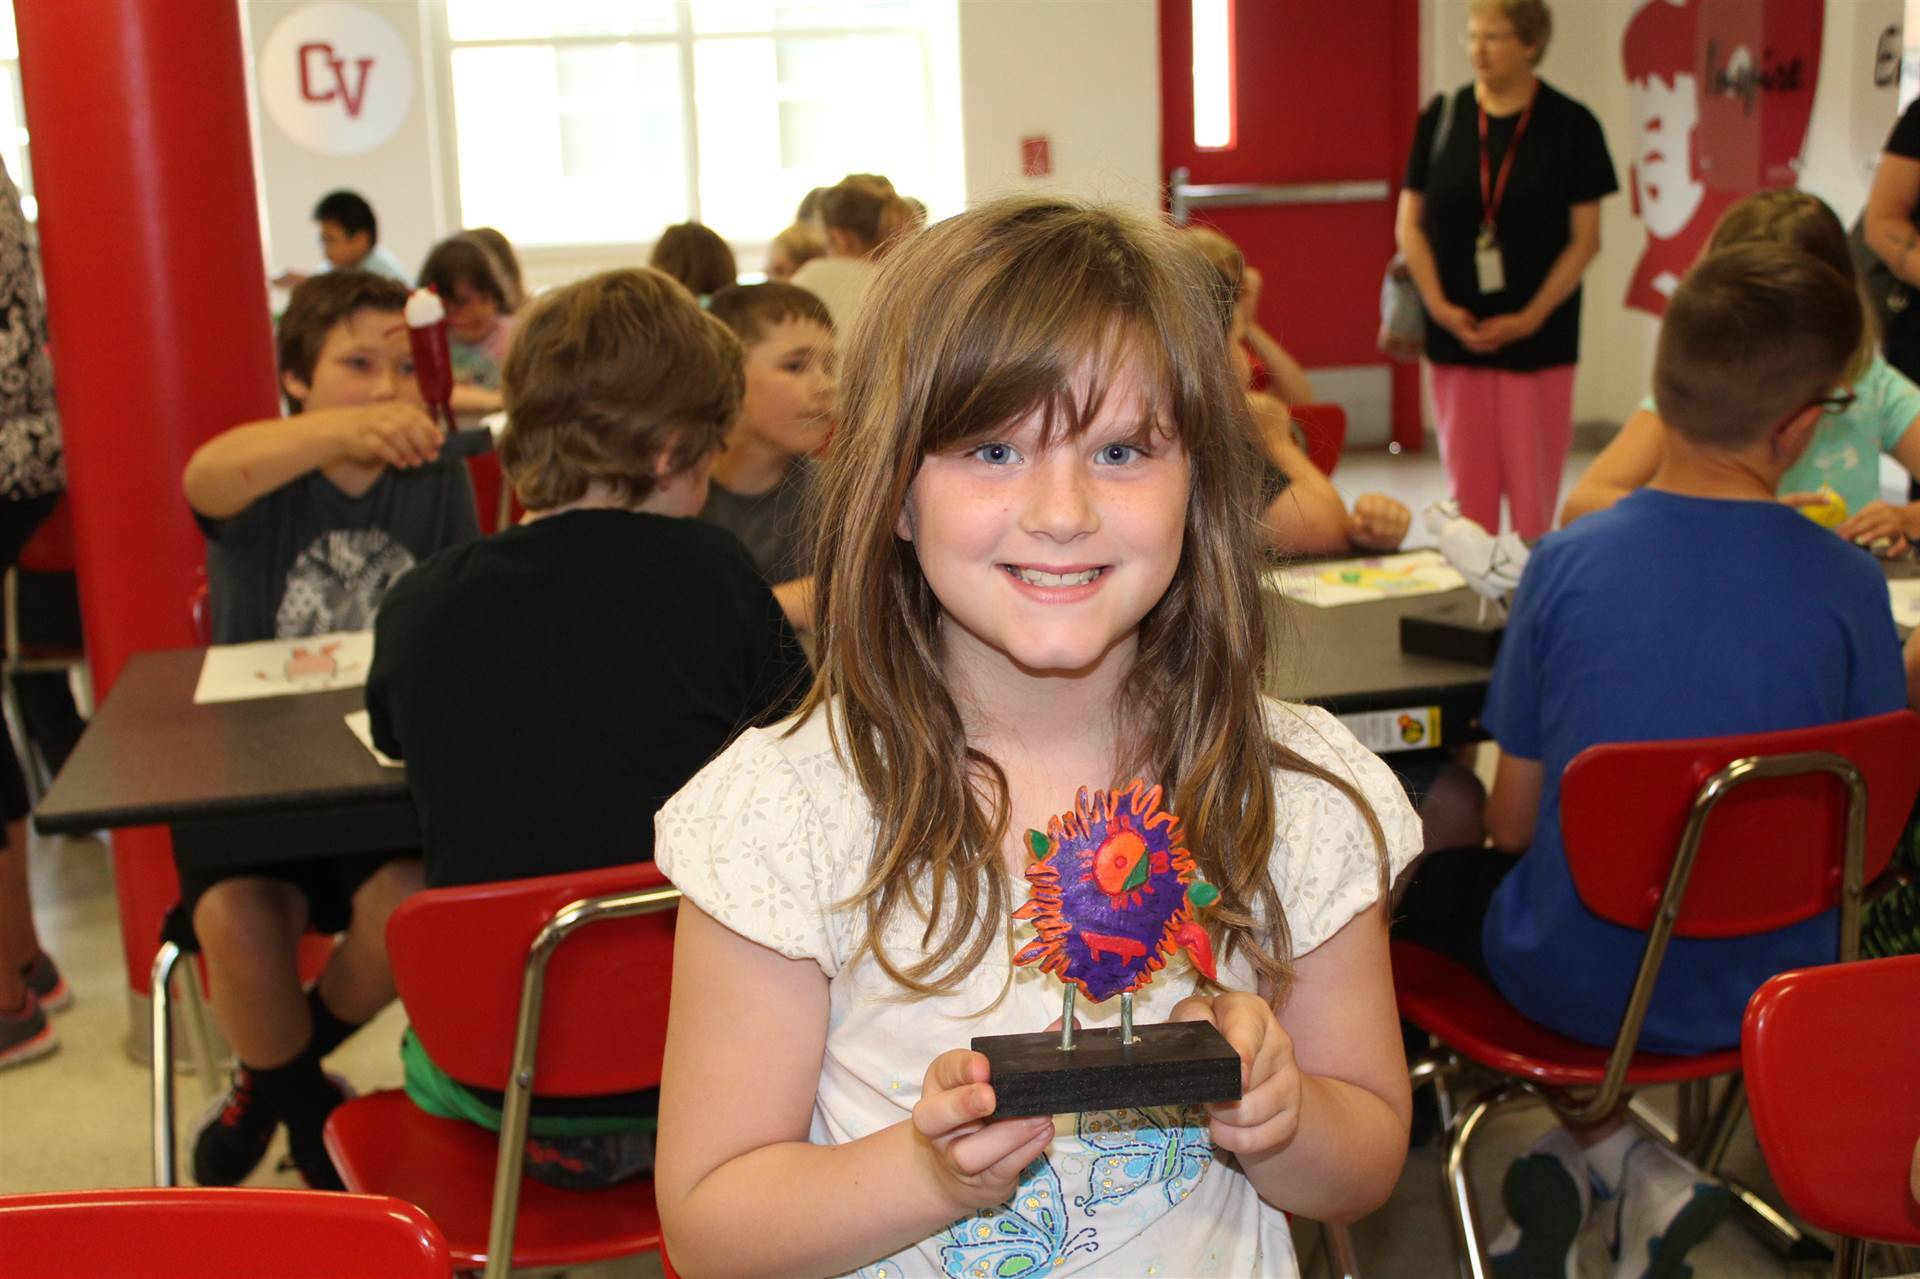 girl smiles at cafeteria table holding 3 d monster sculpture in her hands